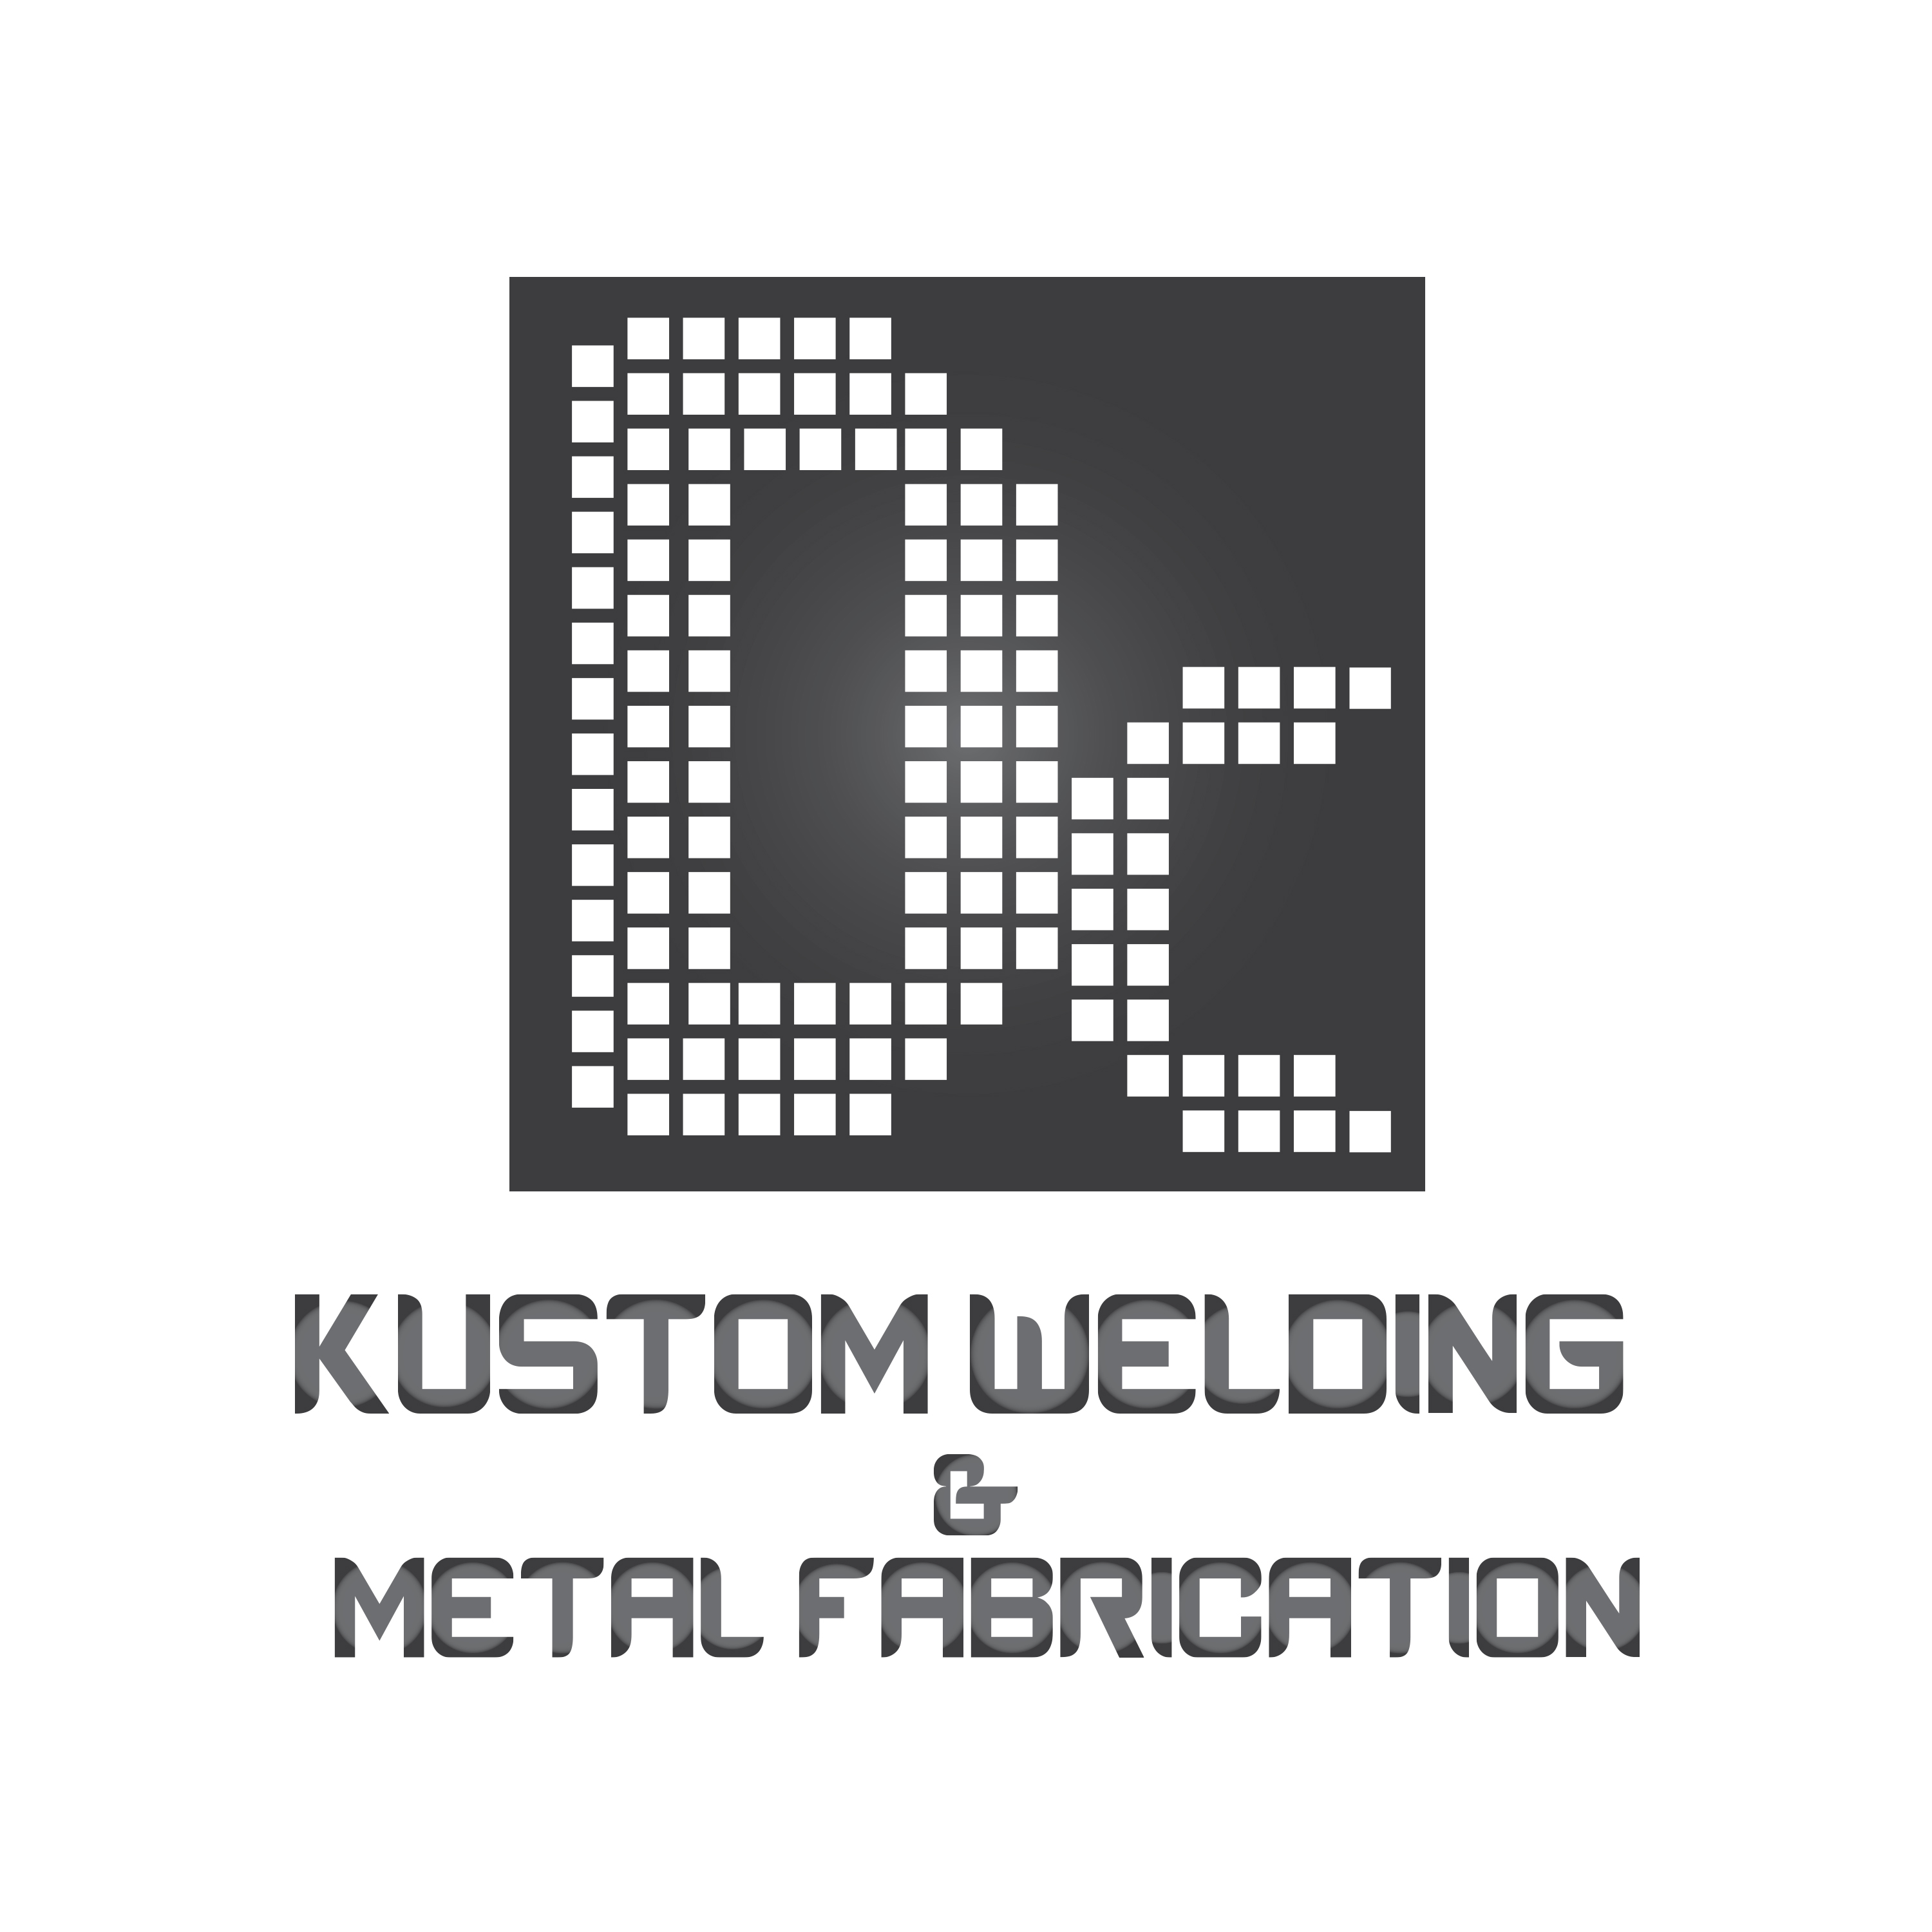 Logo Design by Aehab Asghar - Entry No. 30 in the Logo Design Contest Imaginative Logo Design for DC KUSTOM WELDING & METAL FABRICATION.